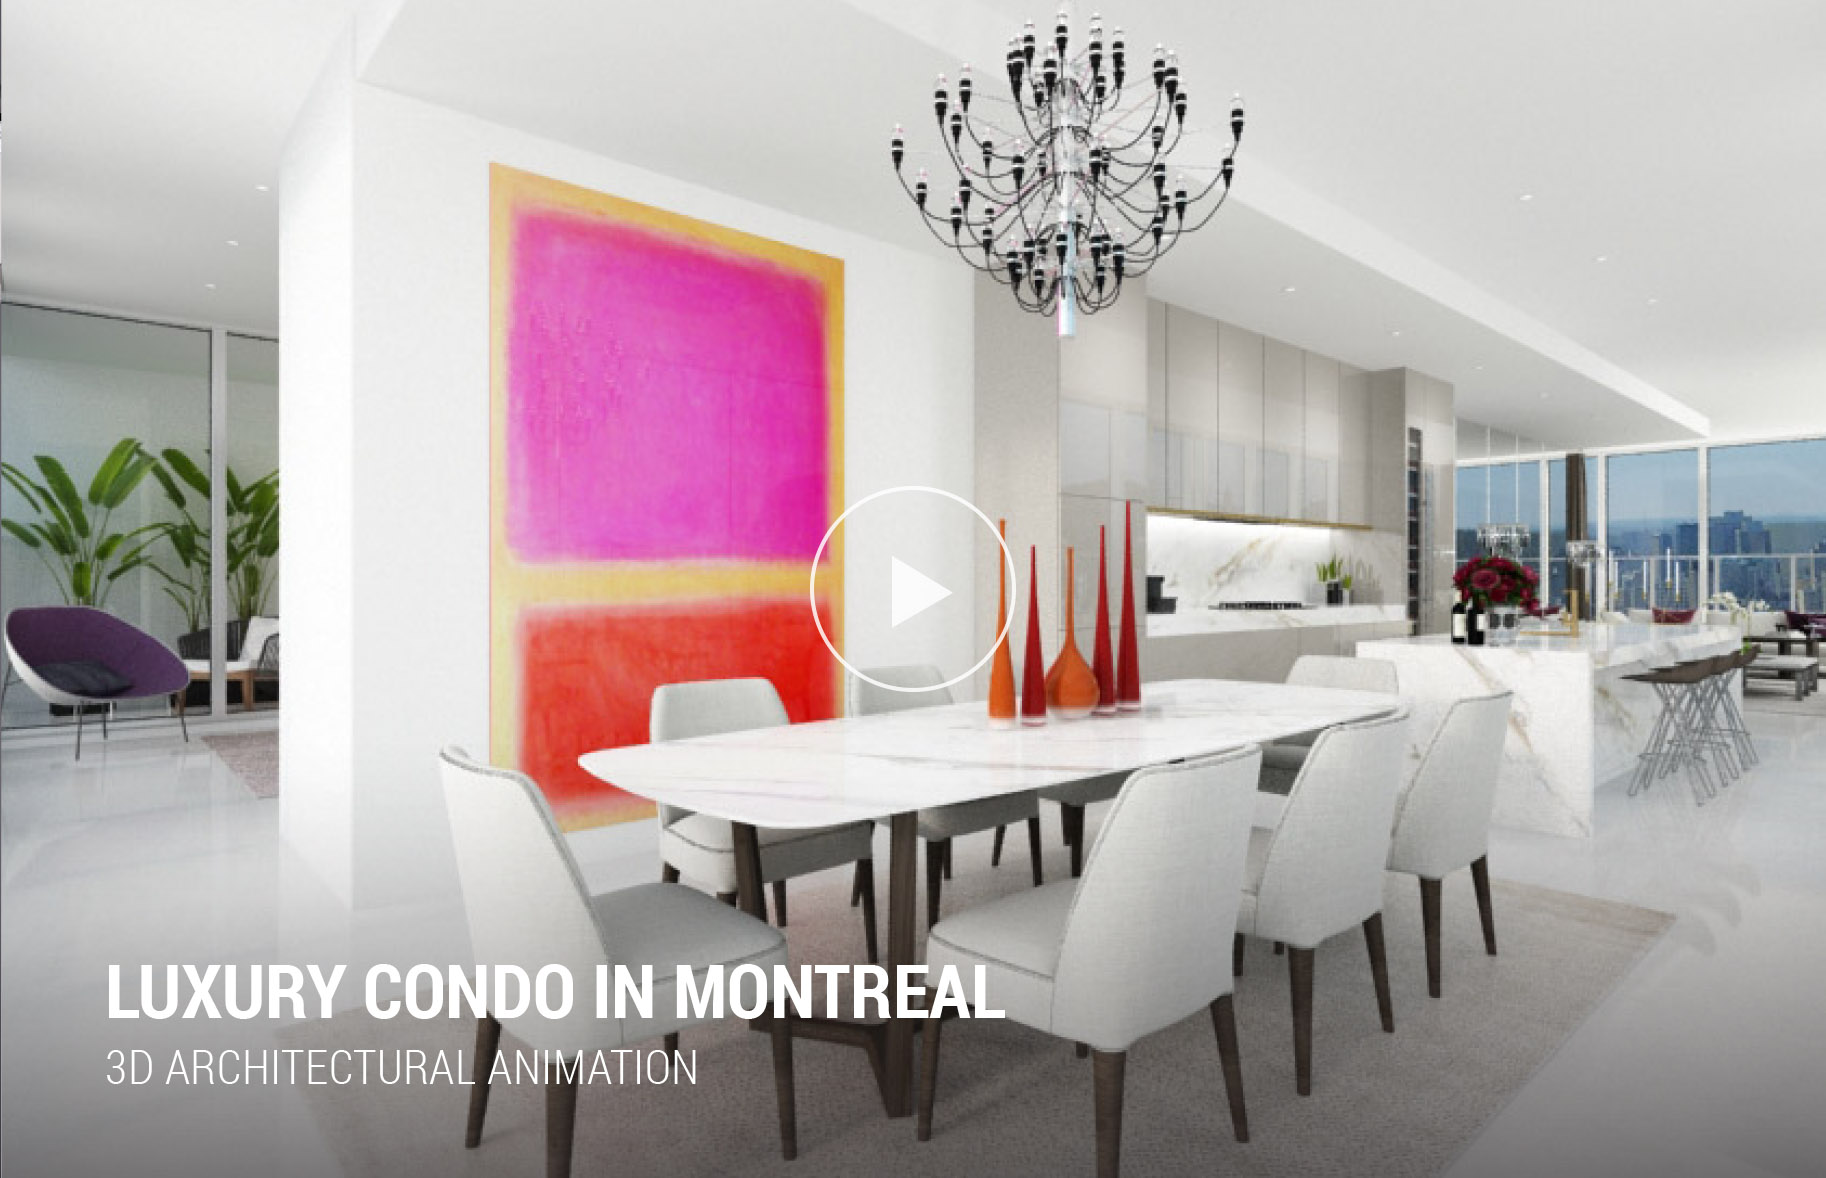 Schema Dimitra Chrona designer, creative director, architectural, 3D visualization, 3D Rendering, branding websites, digital, graphic design, interior design, real estate, luxury property, staging, museum, virtual, art, brochures, exhibitions, logotype, logo, Canada Quebec Montreal Athens Greece schema design luxury condo montreal second floor video large.jpg